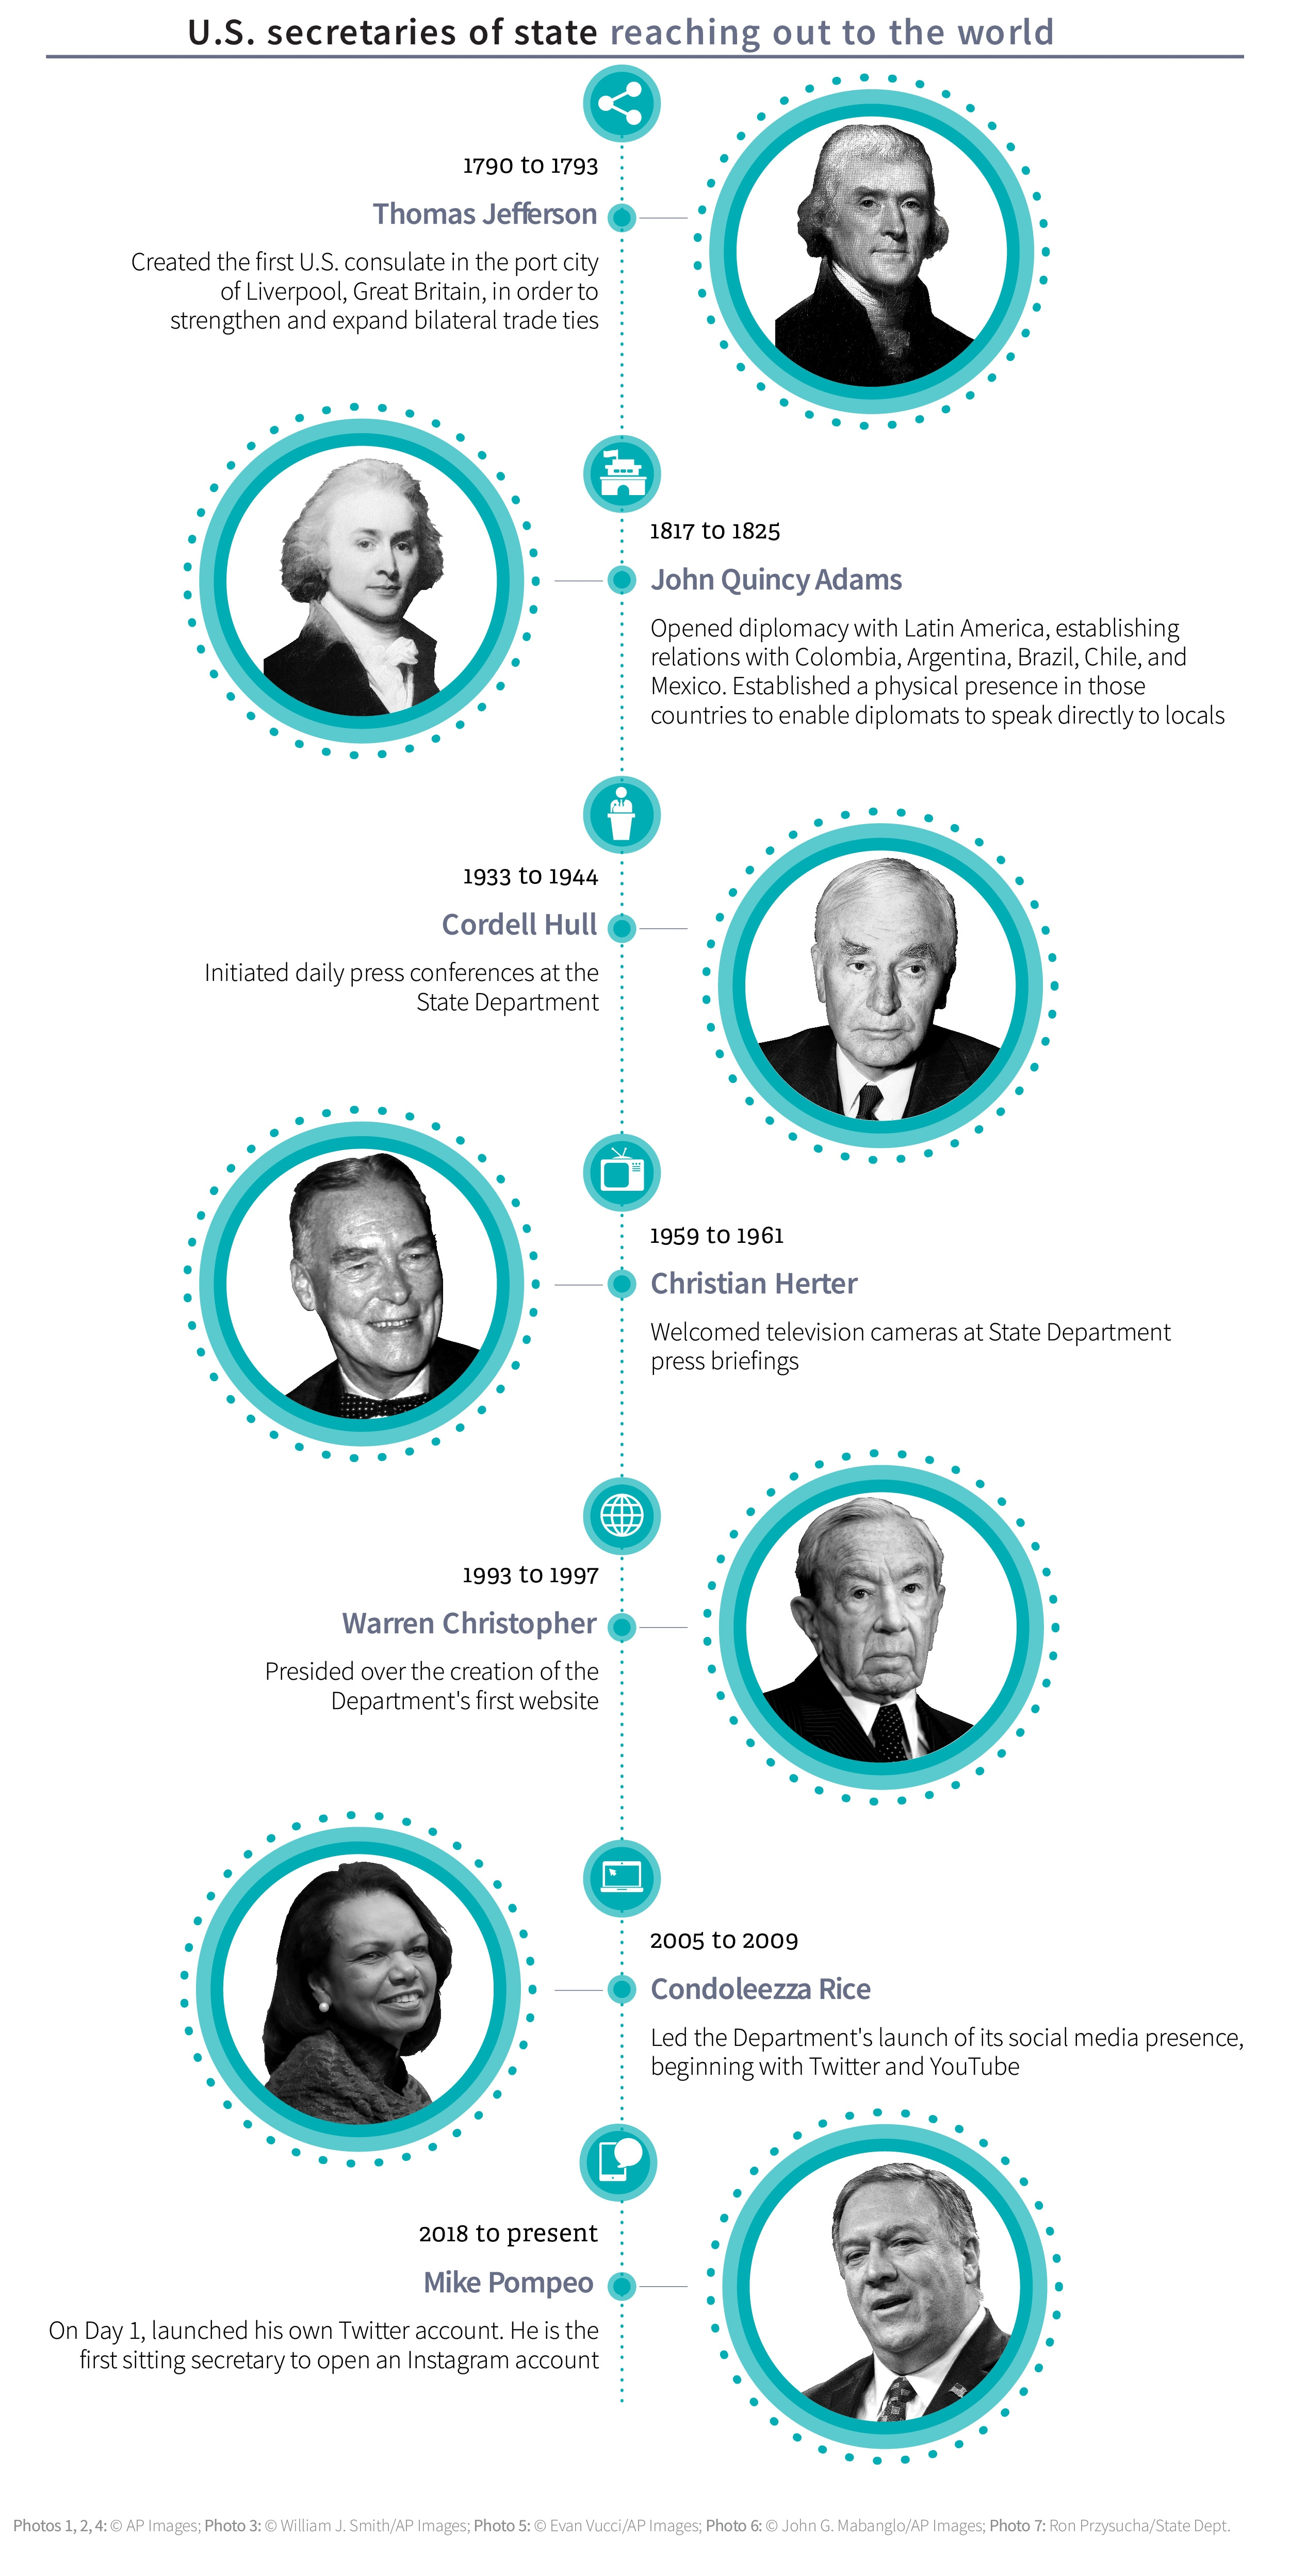 Graphic showing history of secretaries of state communication efforts (State Dept.)